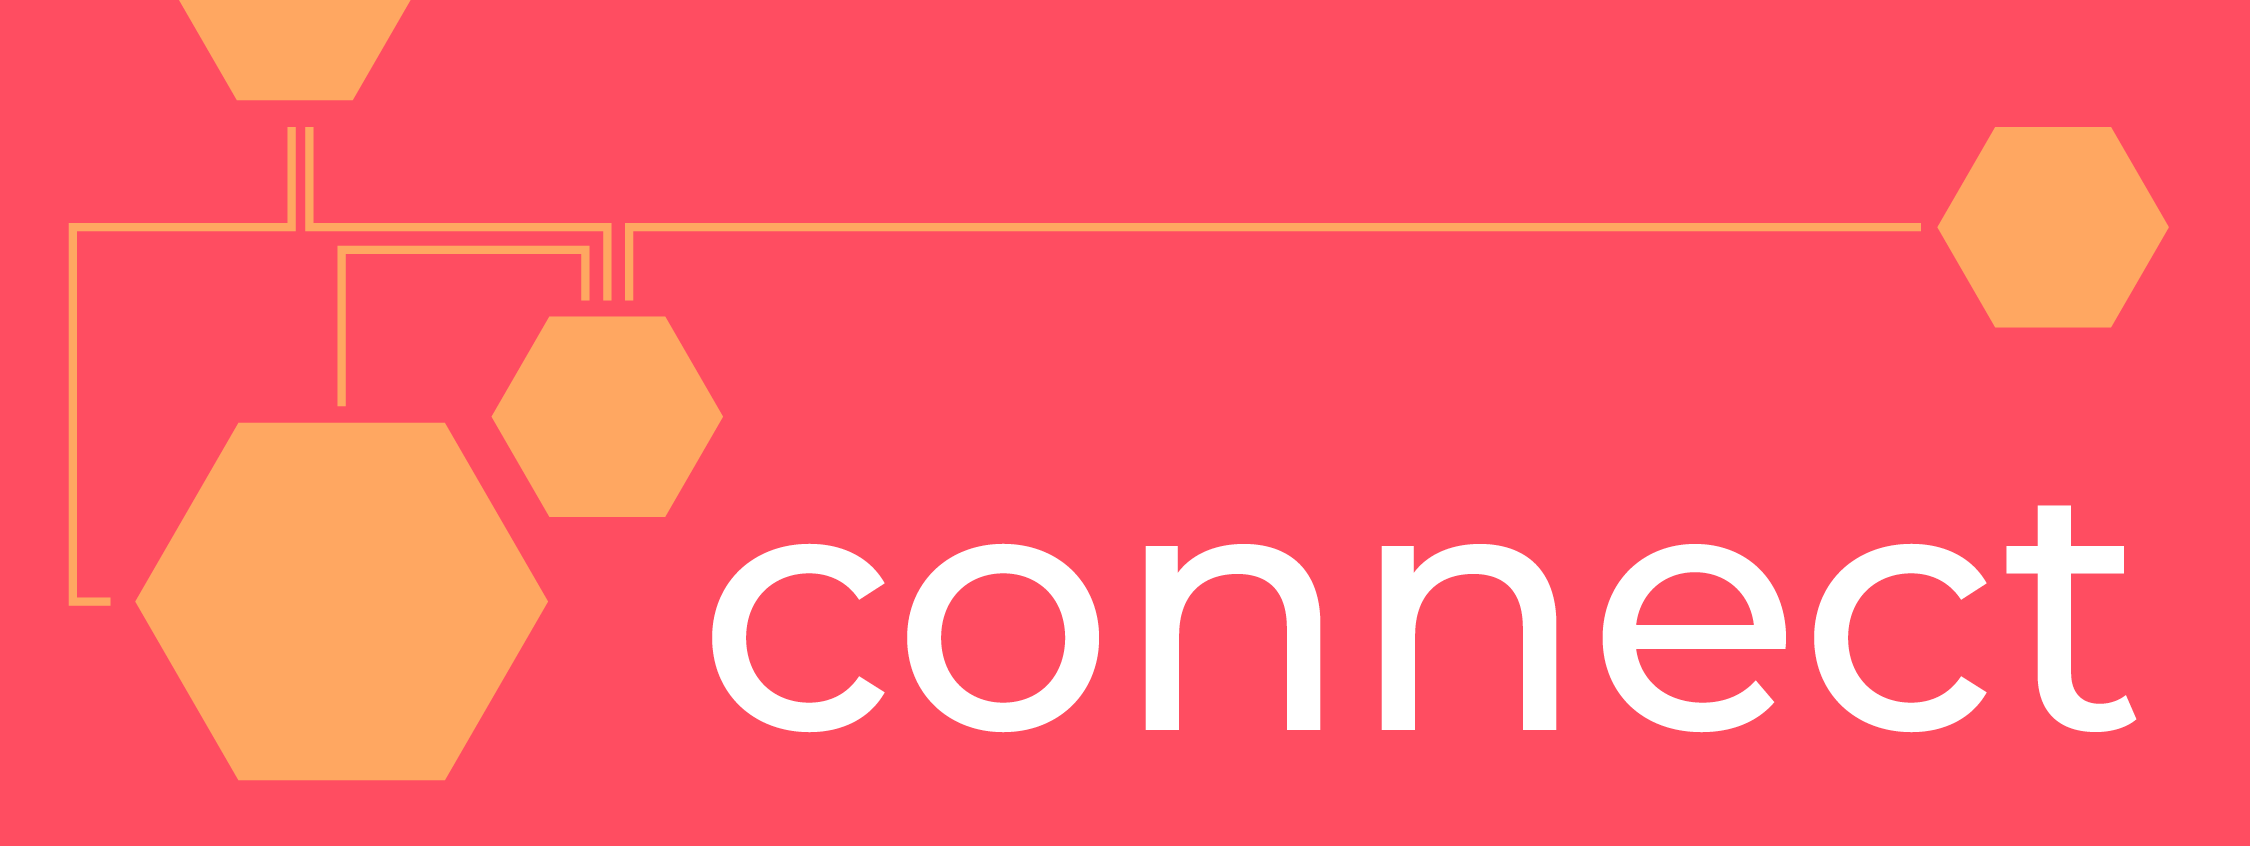 "Stylized text that reads ""Connect"""